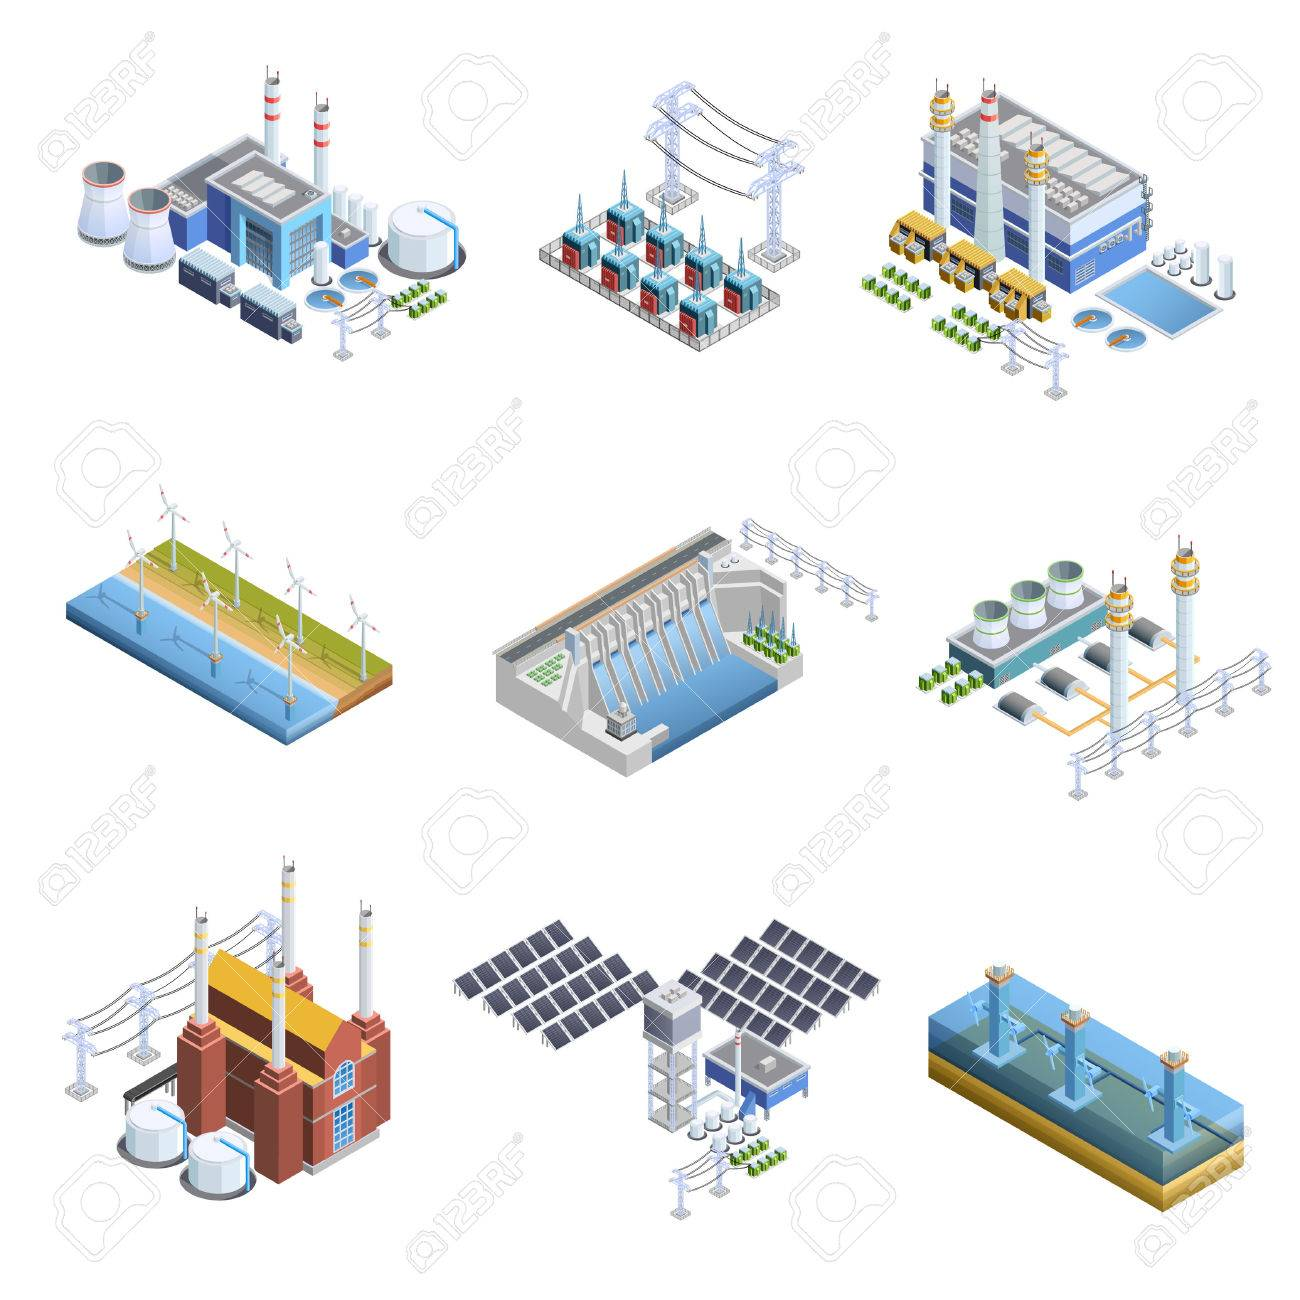 Isometric images set of different types of electricity generation plants from gas turbine to solar isolated vector illustration - 62539186